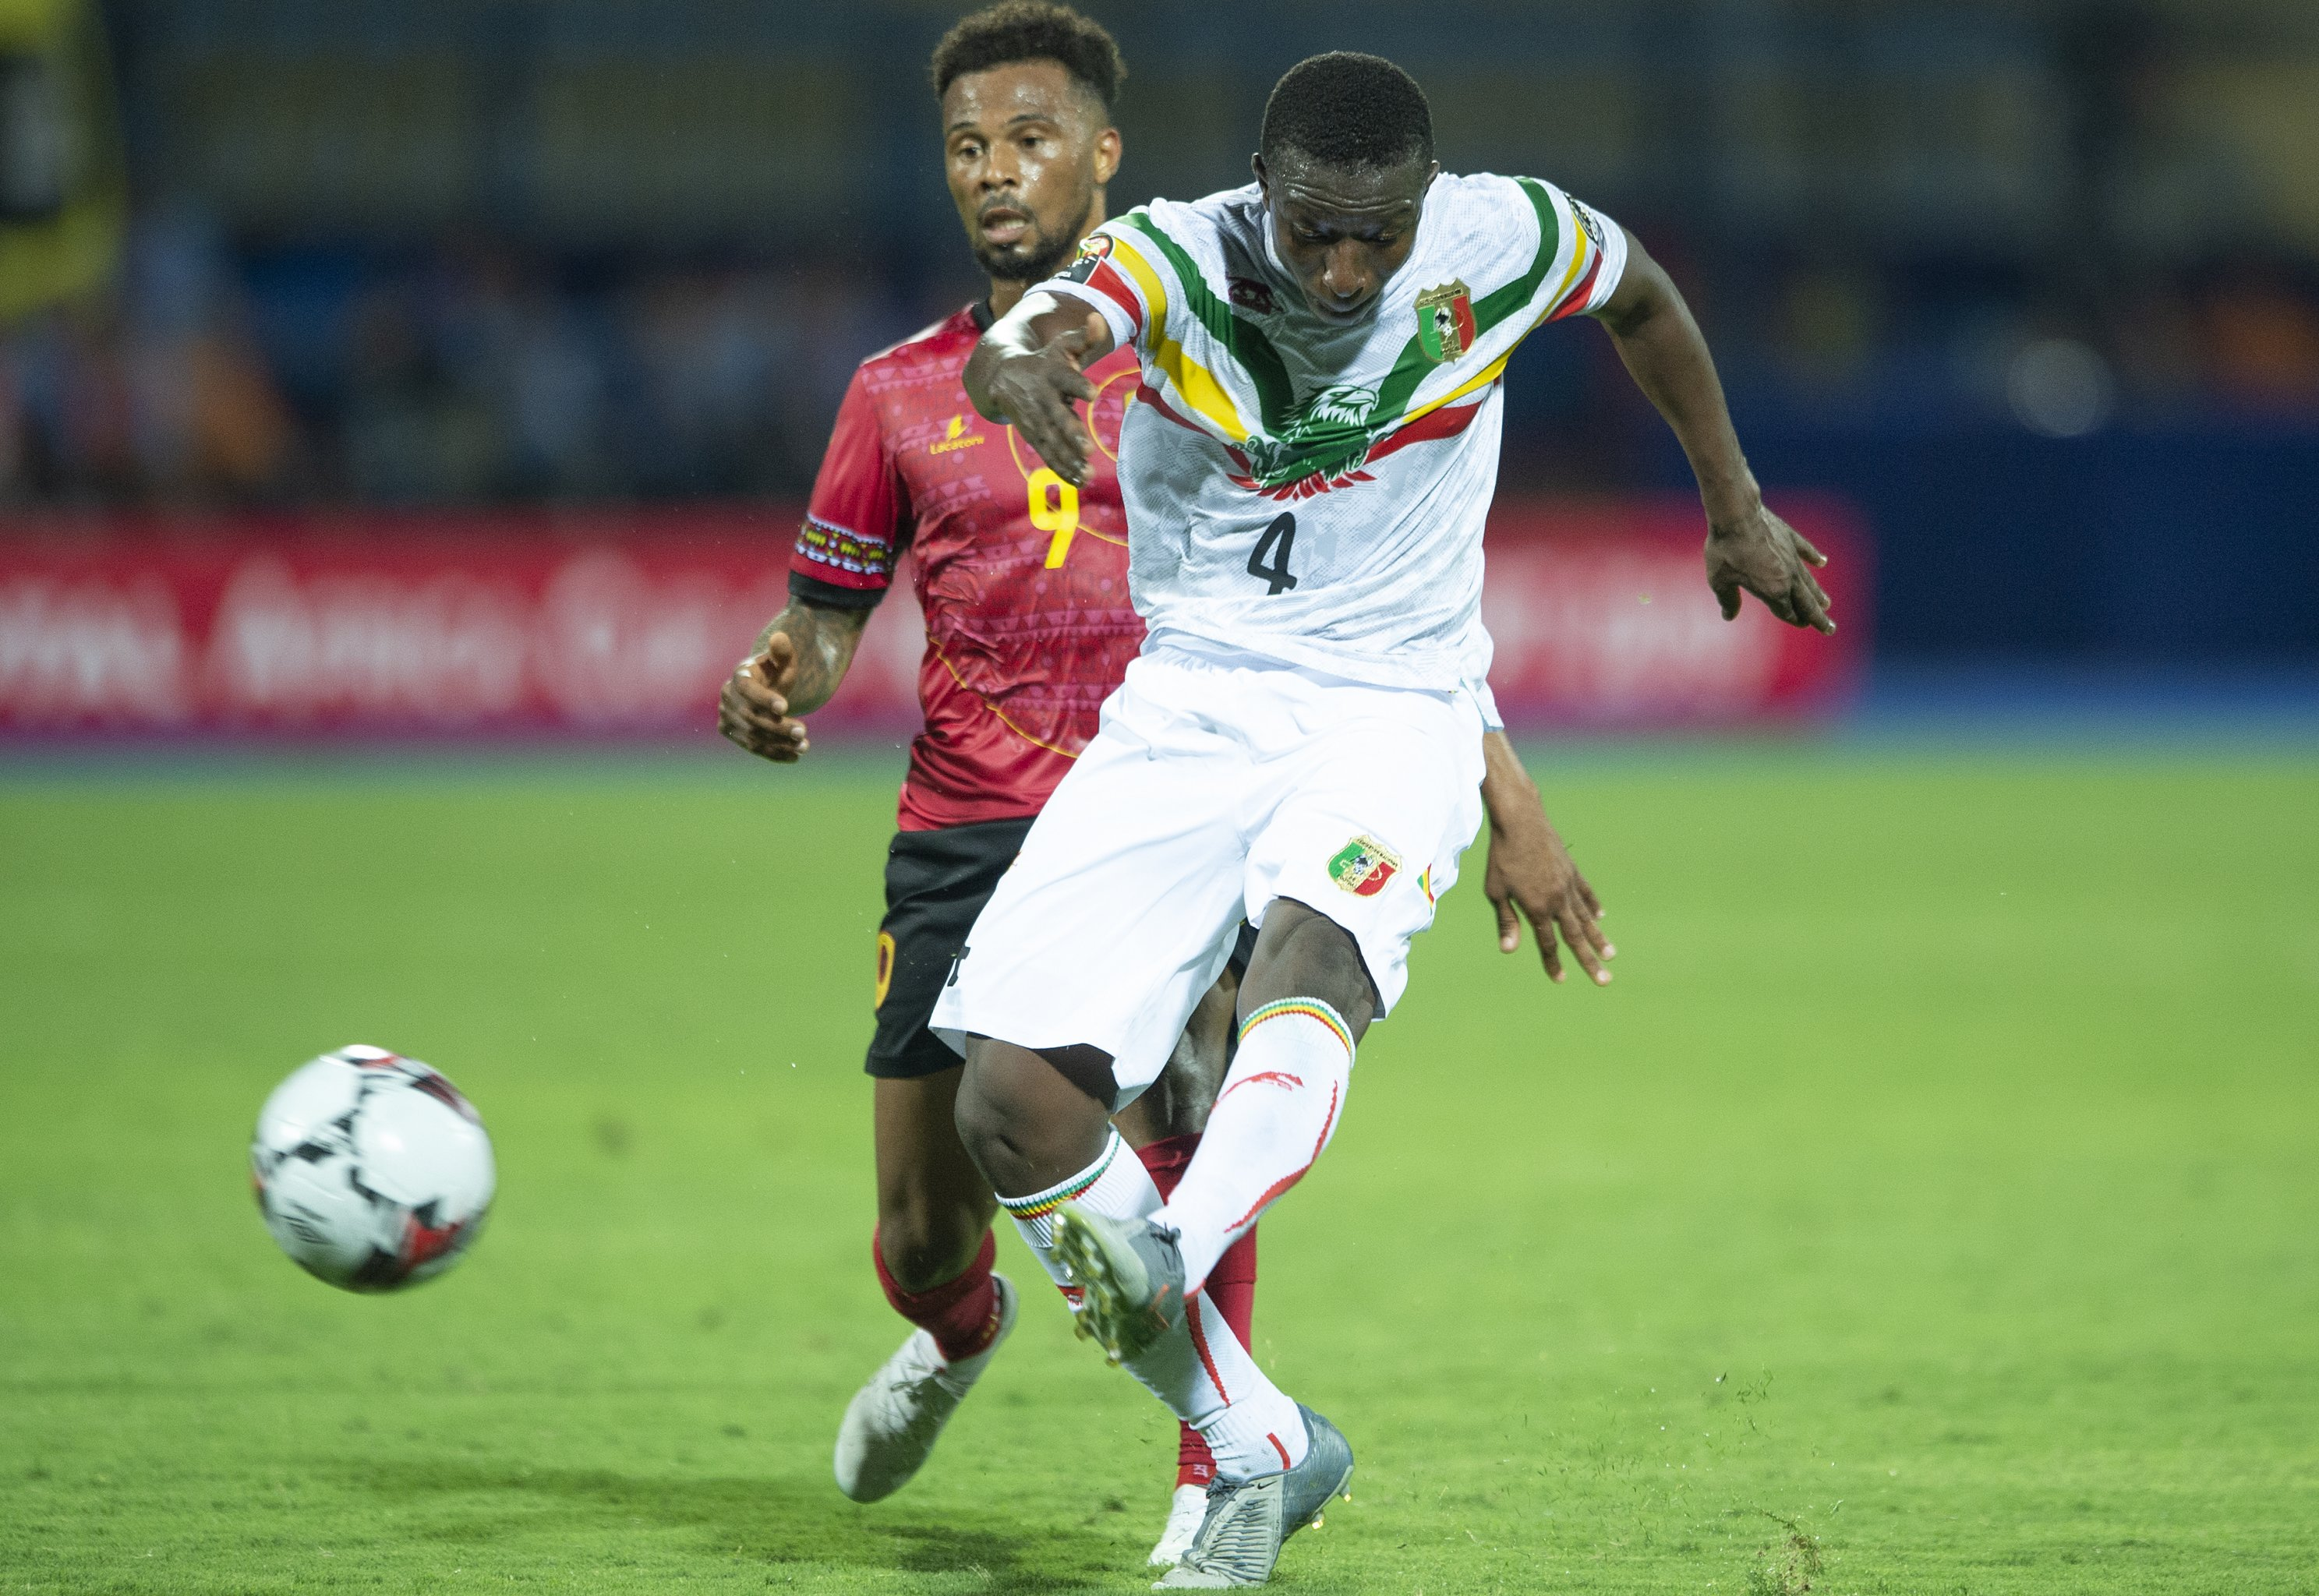 AFCON 2019 Knockout Stage: Round of 16 Schedule and Bracket